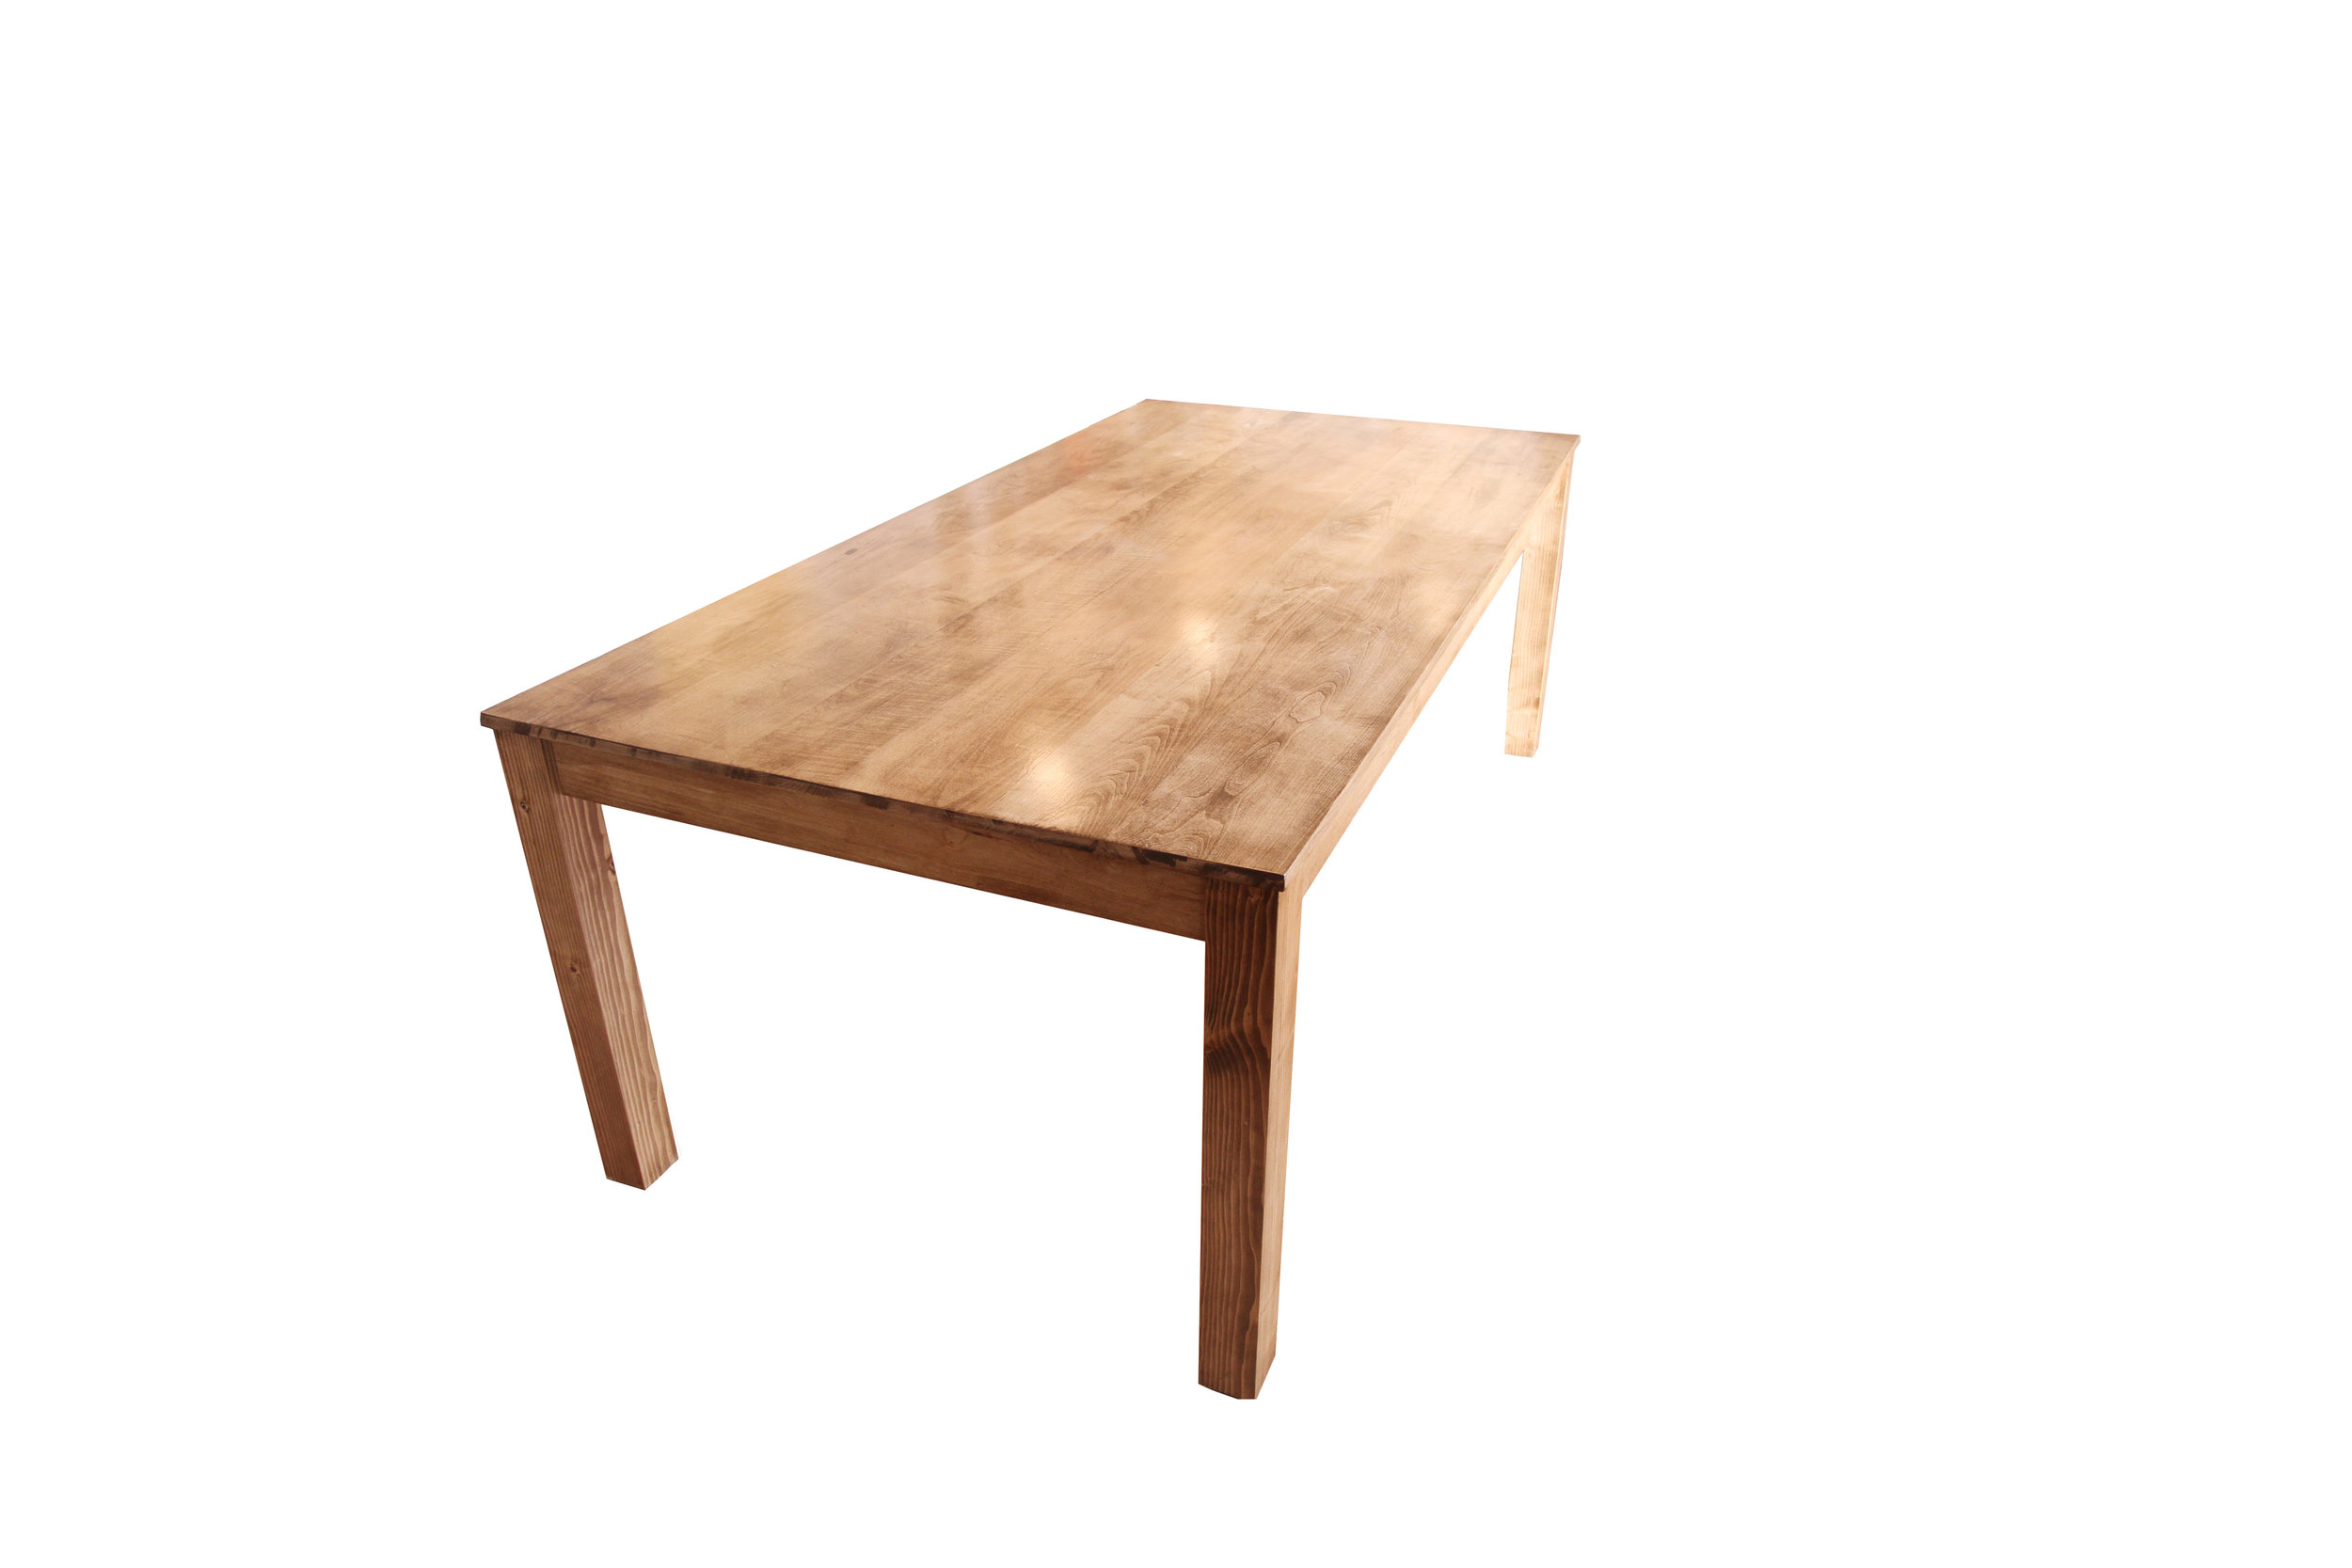 Parsons Table in a Kitchen